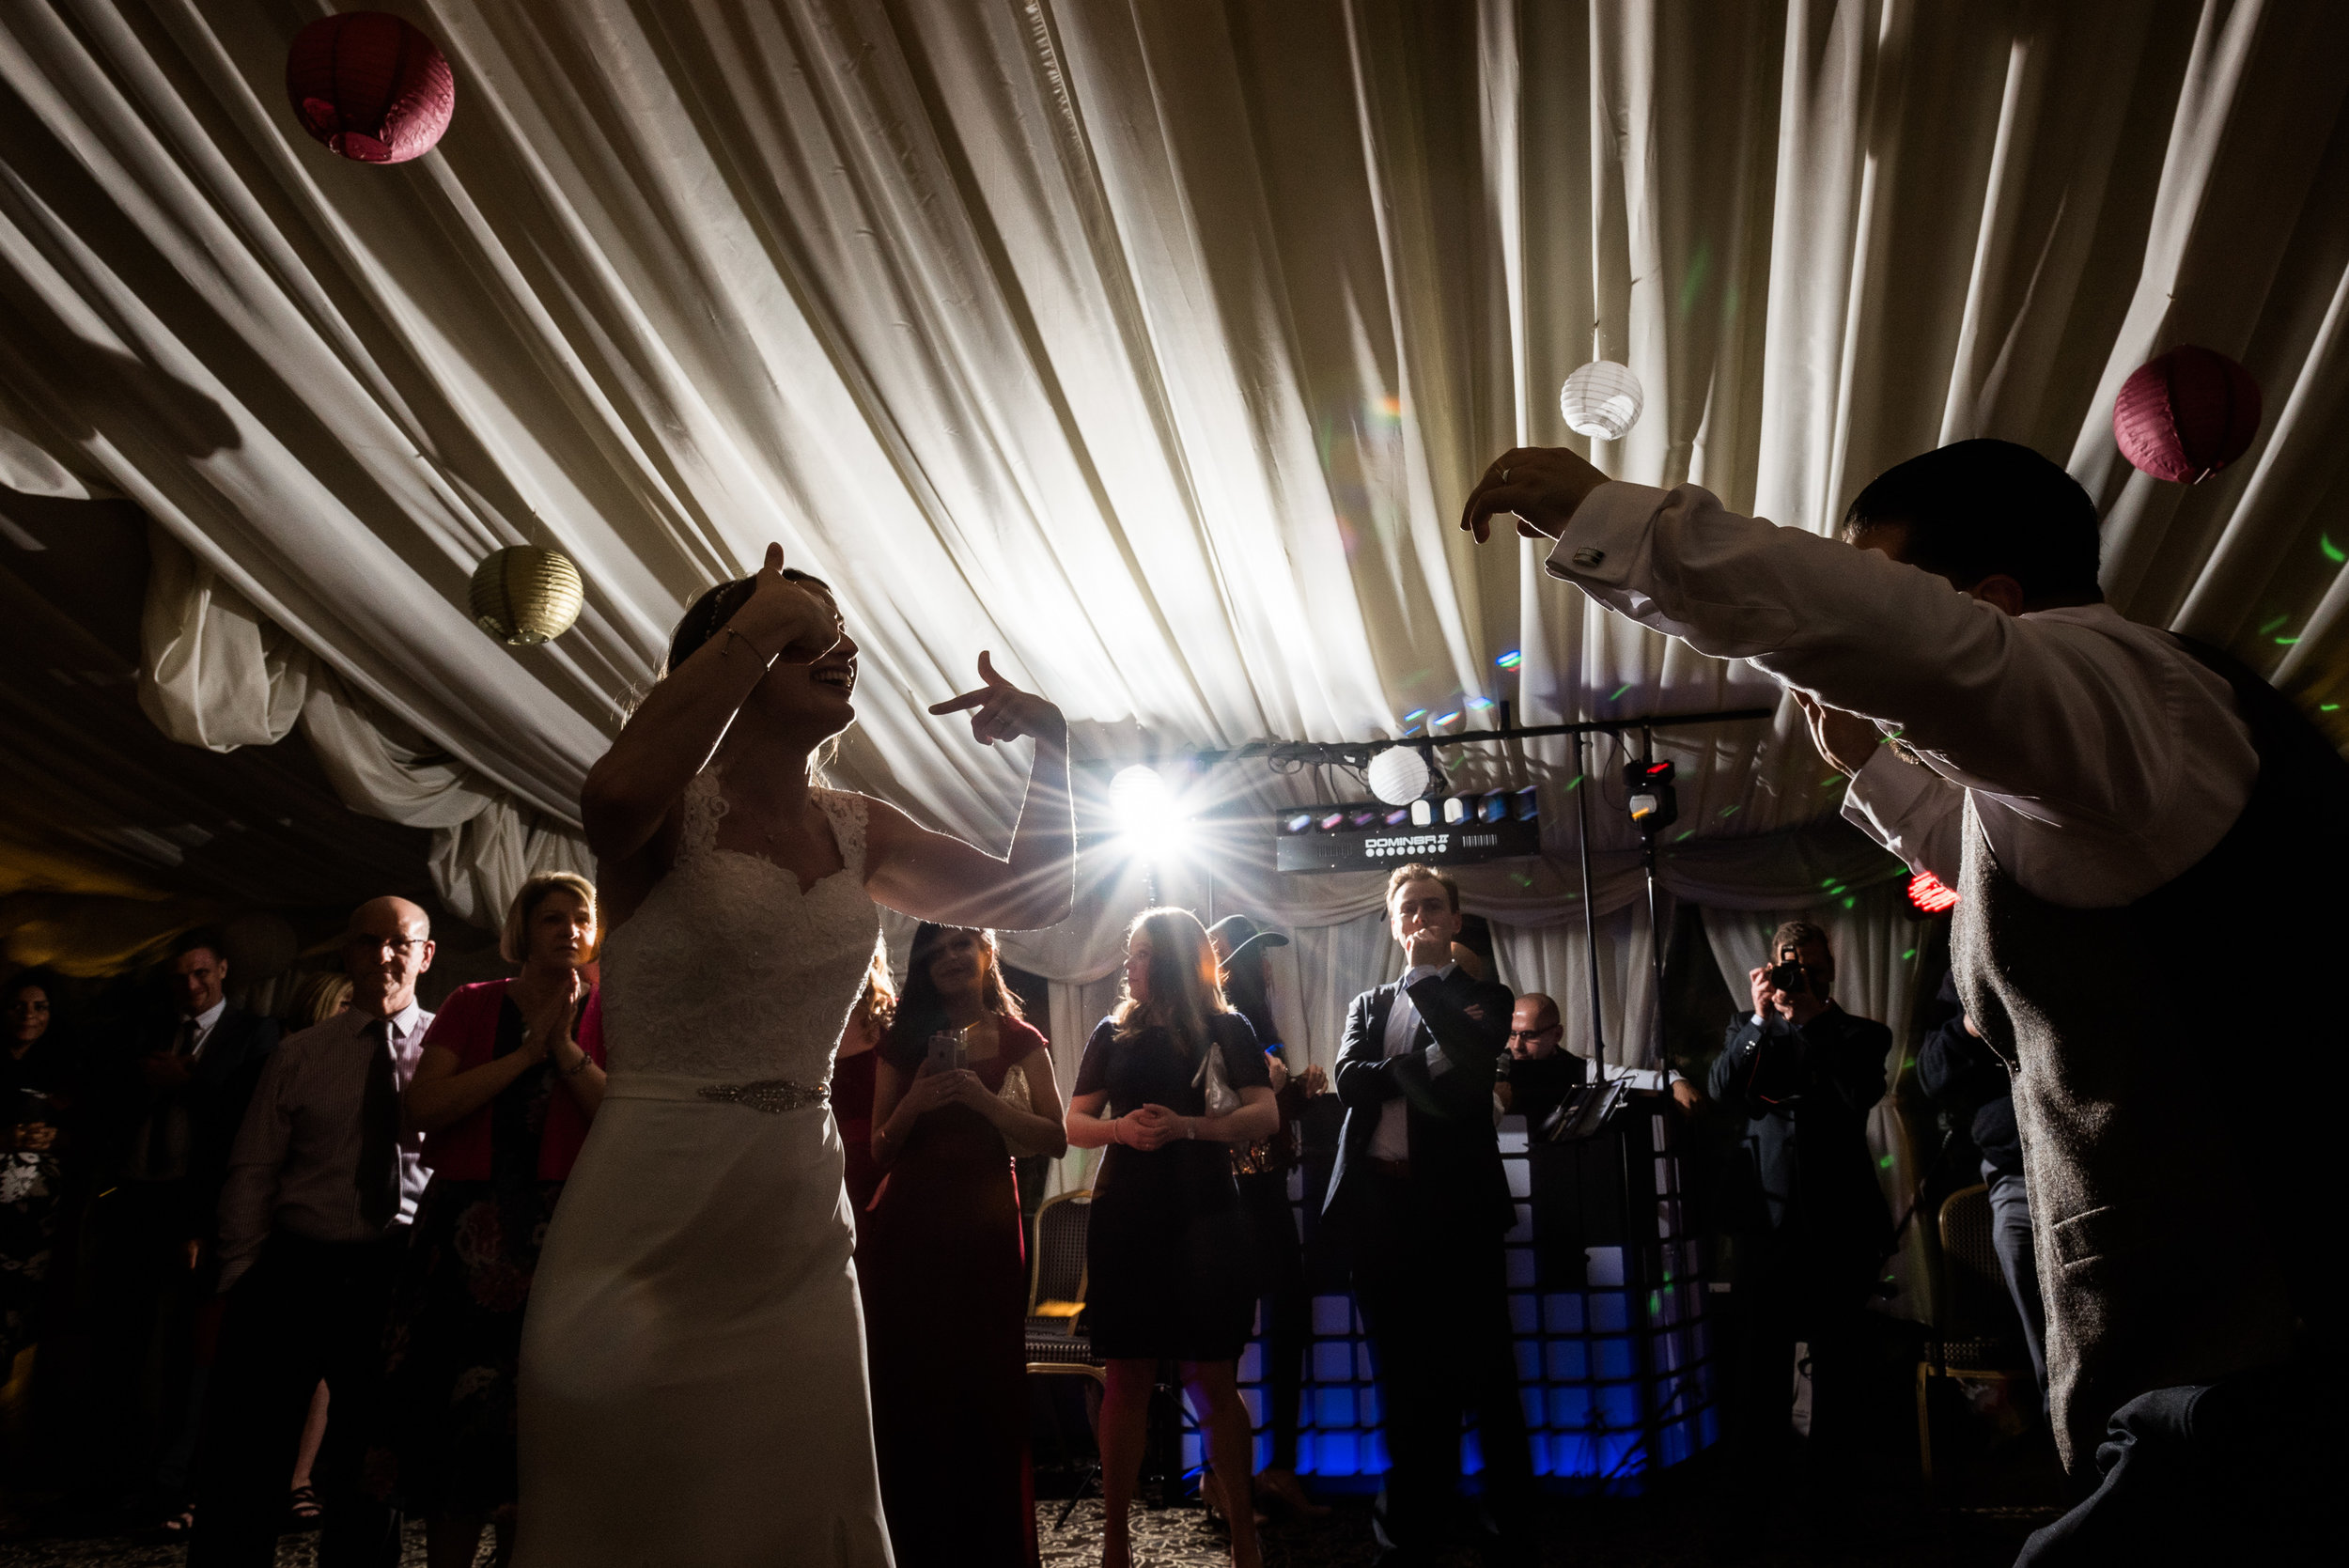 Birmingham Documentary Wedding Photography at New Hall, Sutton Coldfield Turkish Red Candid Reportage - Jenny Harper-79.jpg